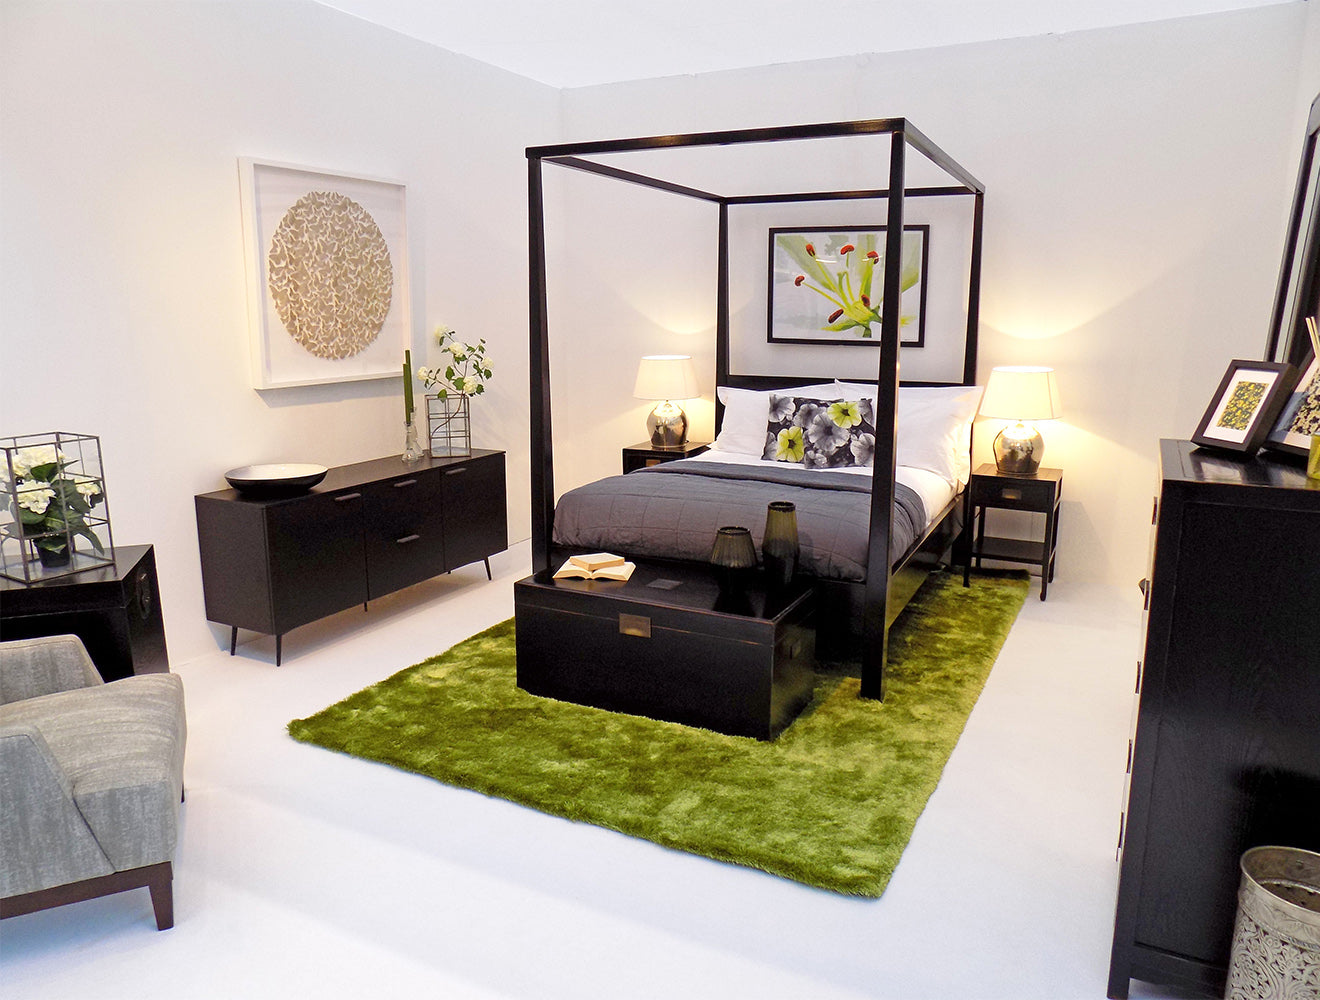 The style rooms House Fair Martyn White Designs Summer Purity minimalist bedroom